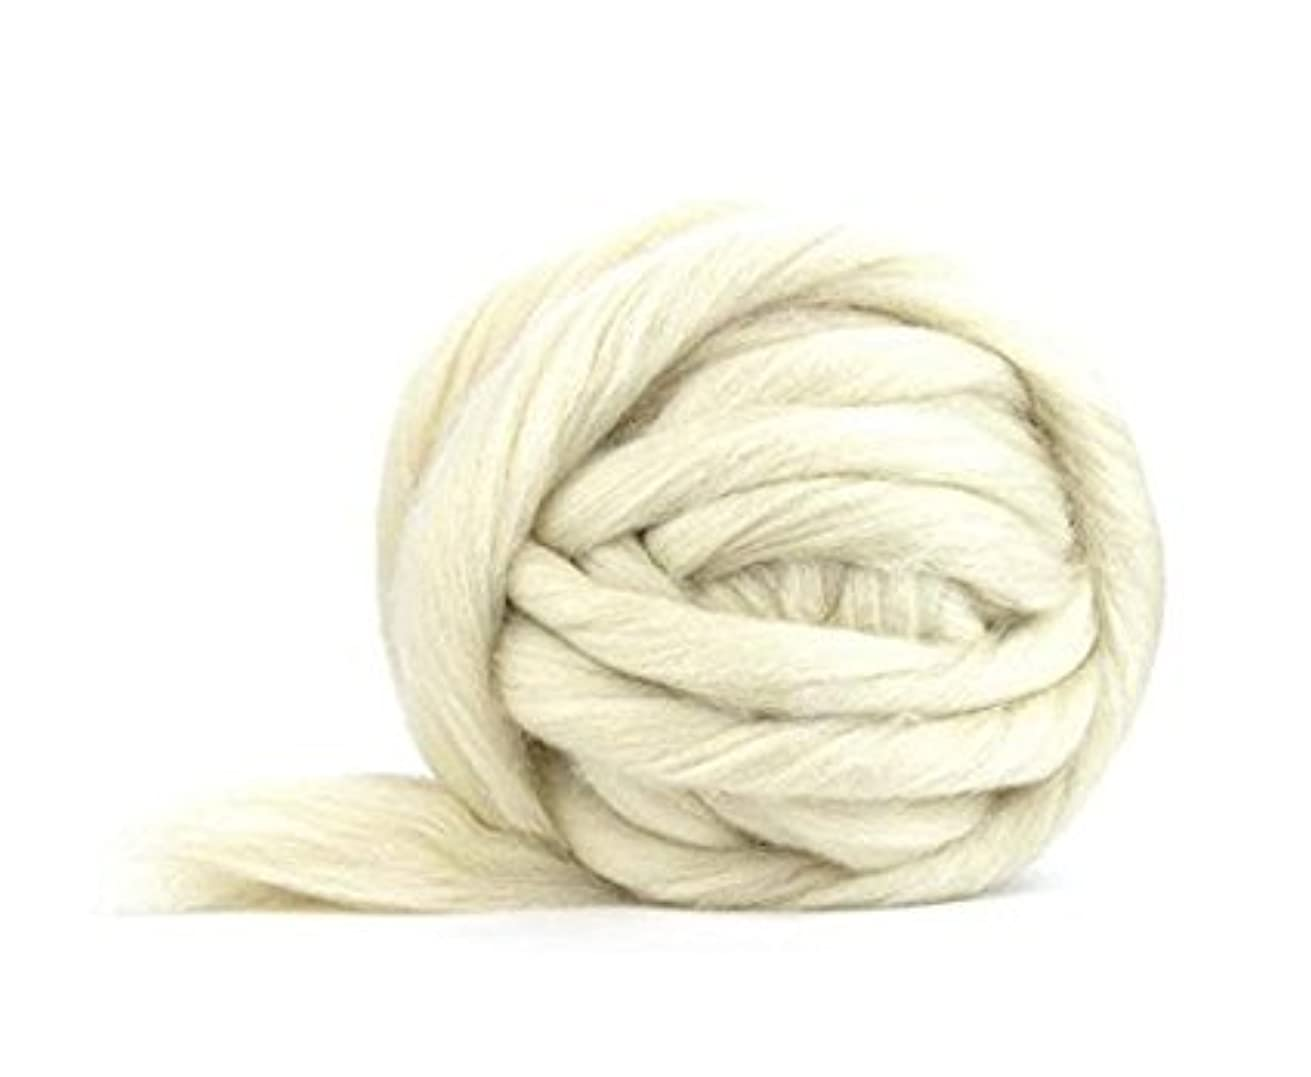 5 Lbs. Paradise Fibers Cheviot Wool Roving - Spinning Fiber Super Soft Wool Top Roving drafted for Hand Spinning with Drop Spindle or Wheel, Felting, Blending and Weaving.